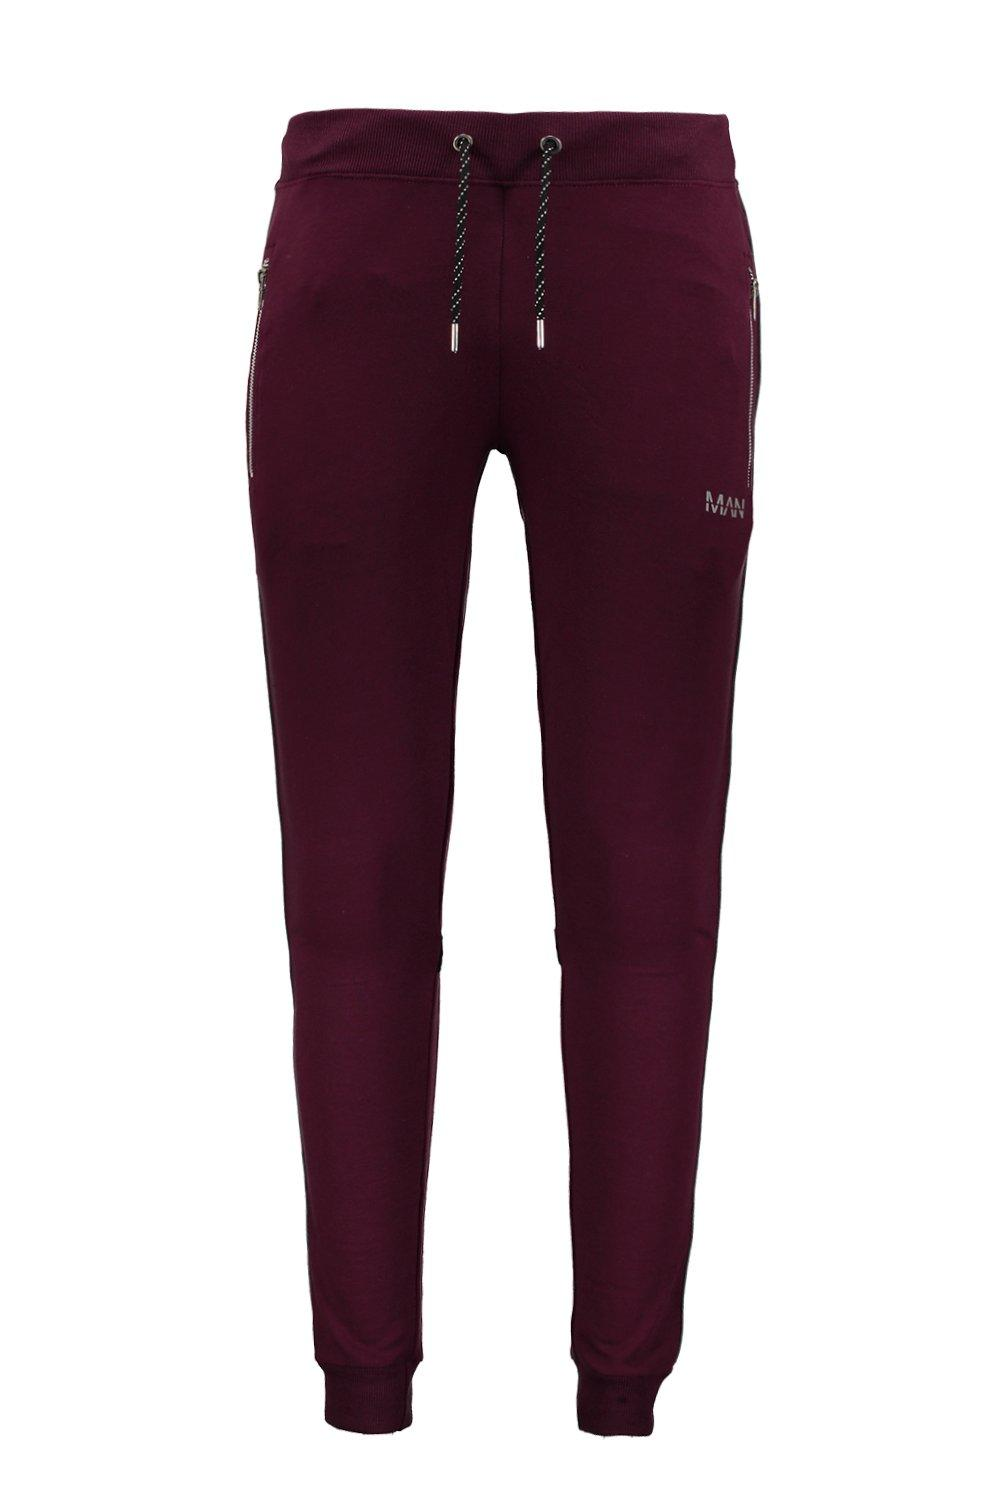 Reflective Fit Piping wine With Jogger Muscle ndtTIxqw8t